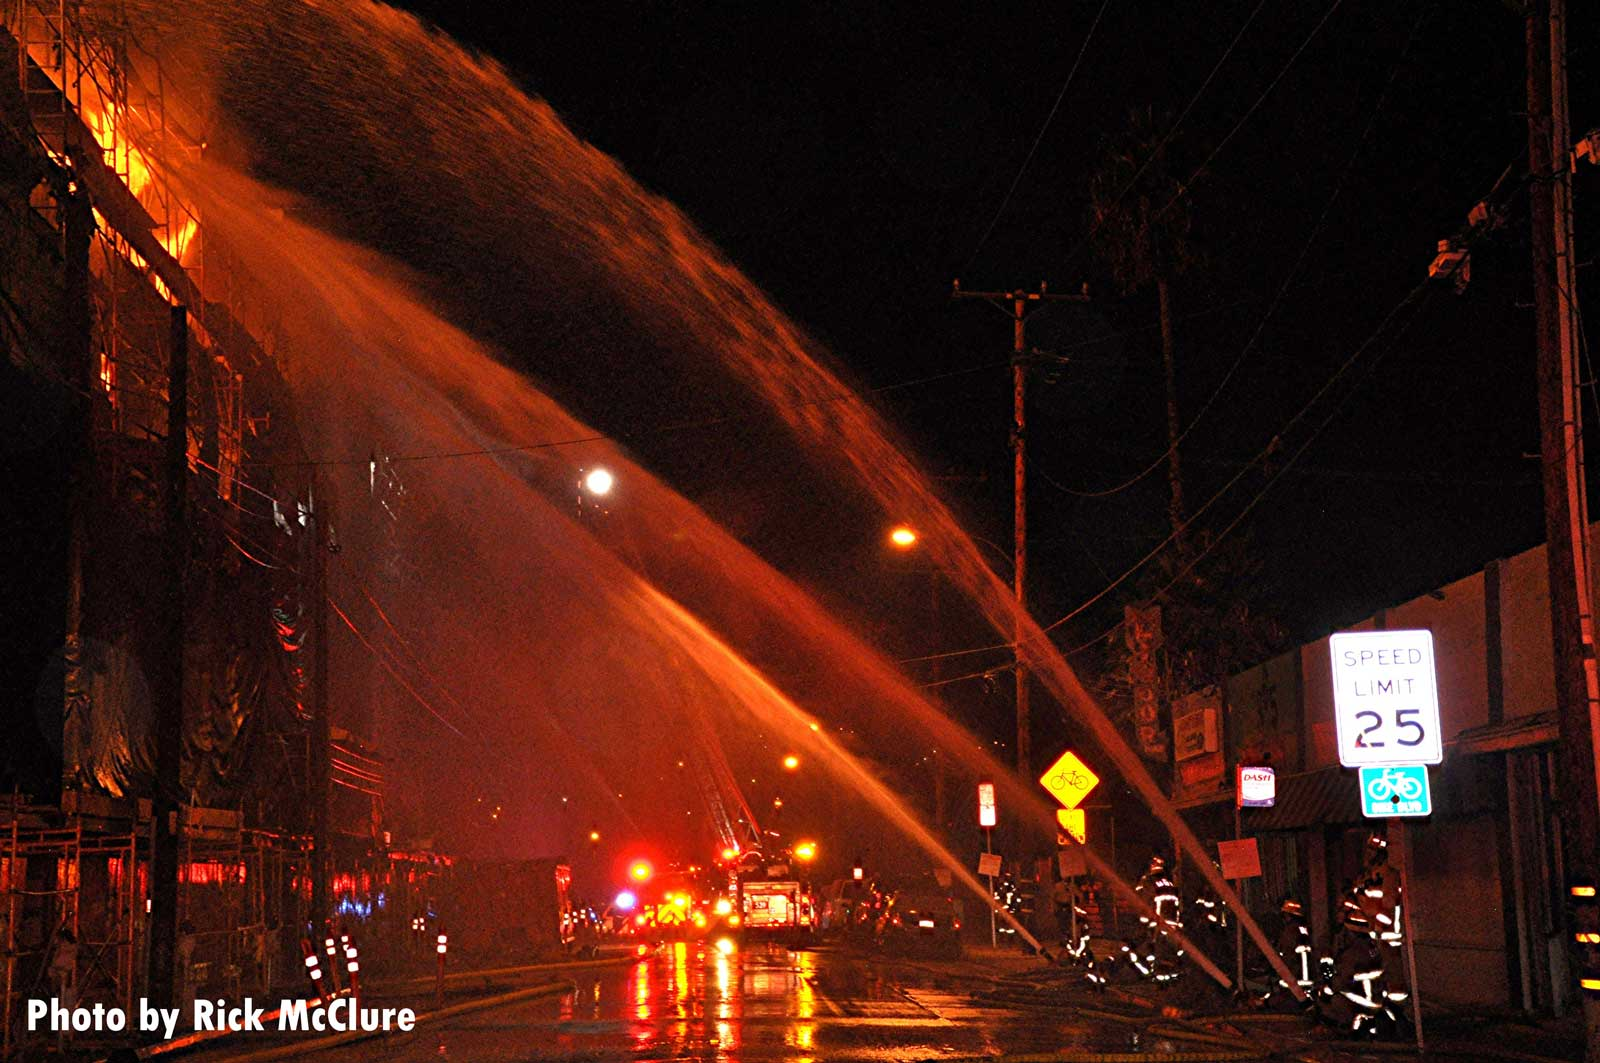 Firefighters train multiple hose streams on the flames